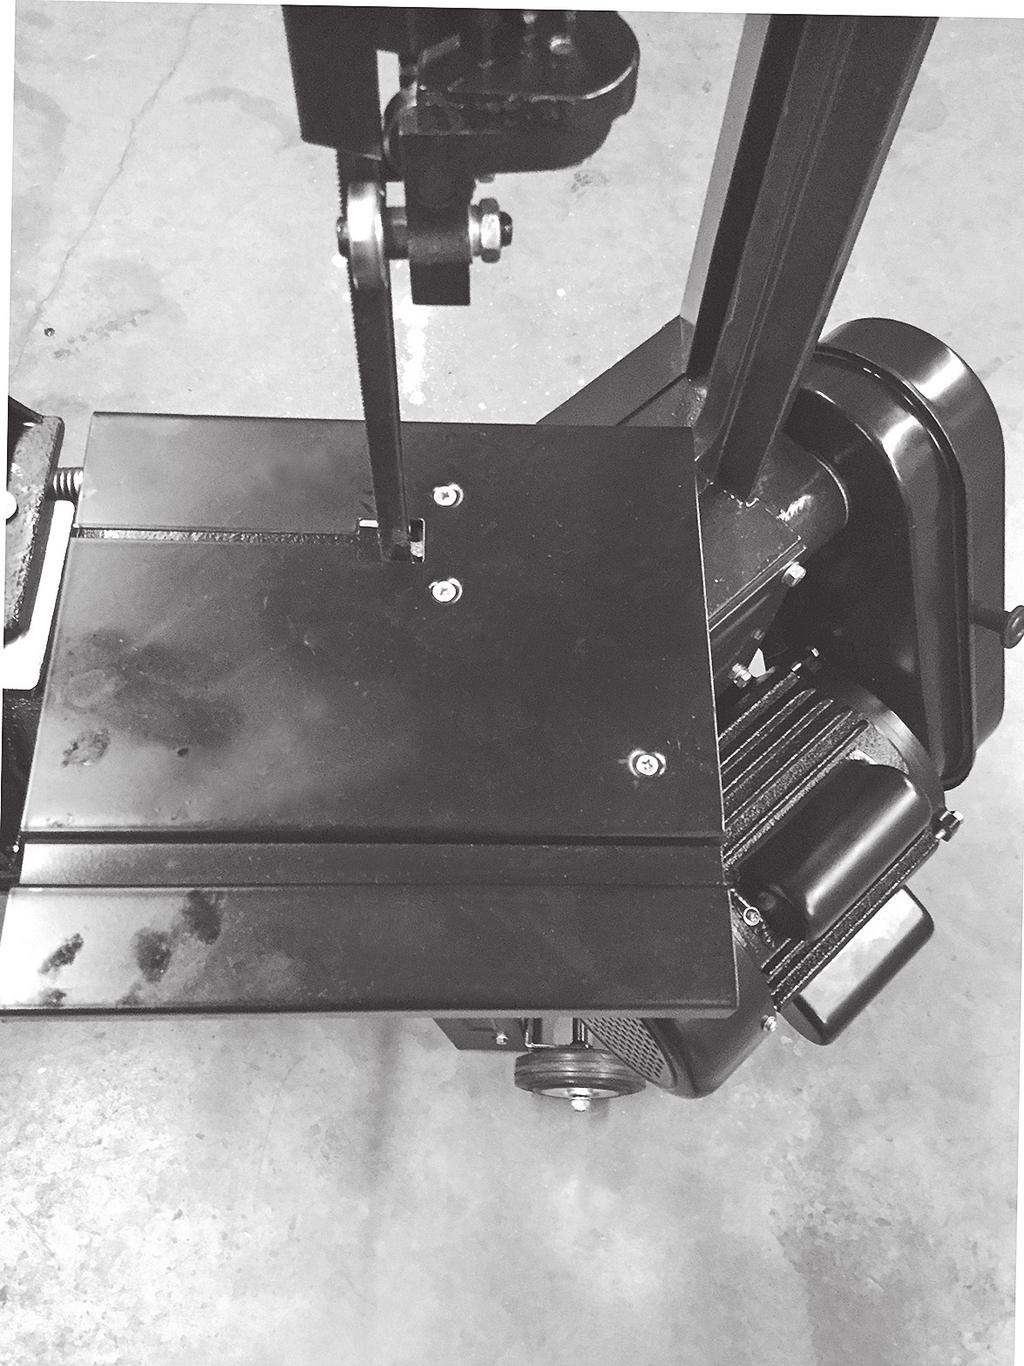 Install Vertical Cutting Table and fasten with previously removed screws (FIG. 9). 5. Install the table support bracket with pre-installed hex bolt and a M6X12 flat head screw, washer, and nut. 6.